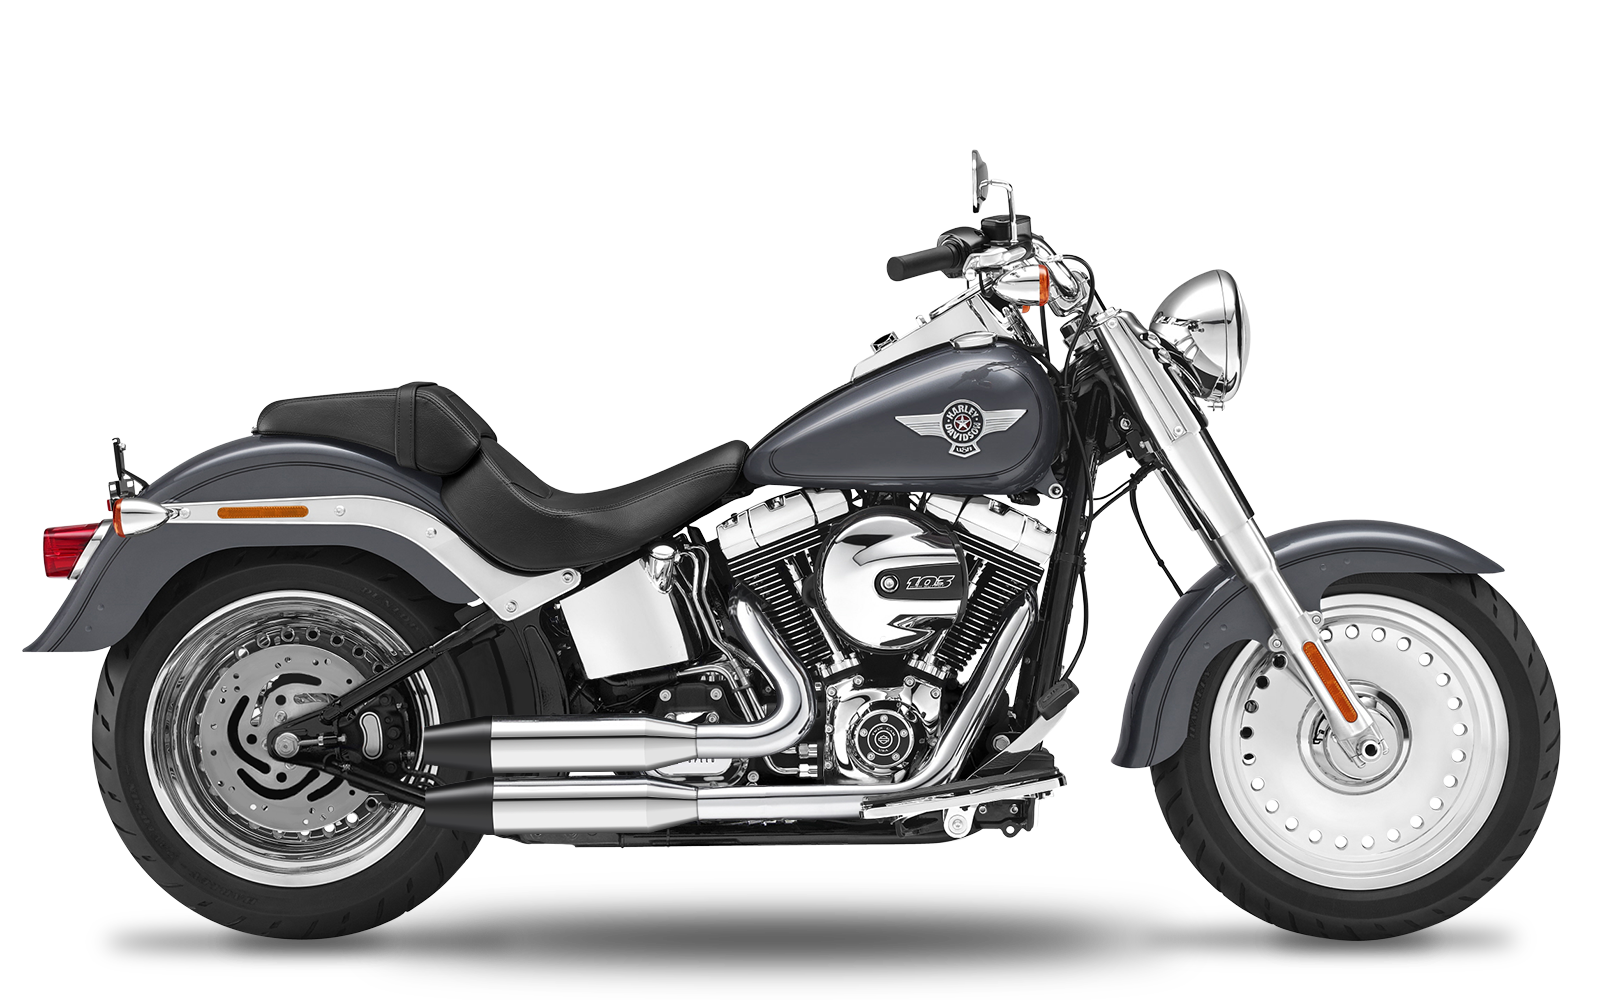 Softail - Fat Boy - TC88 - 2000-2006 - Complete systems adjustable